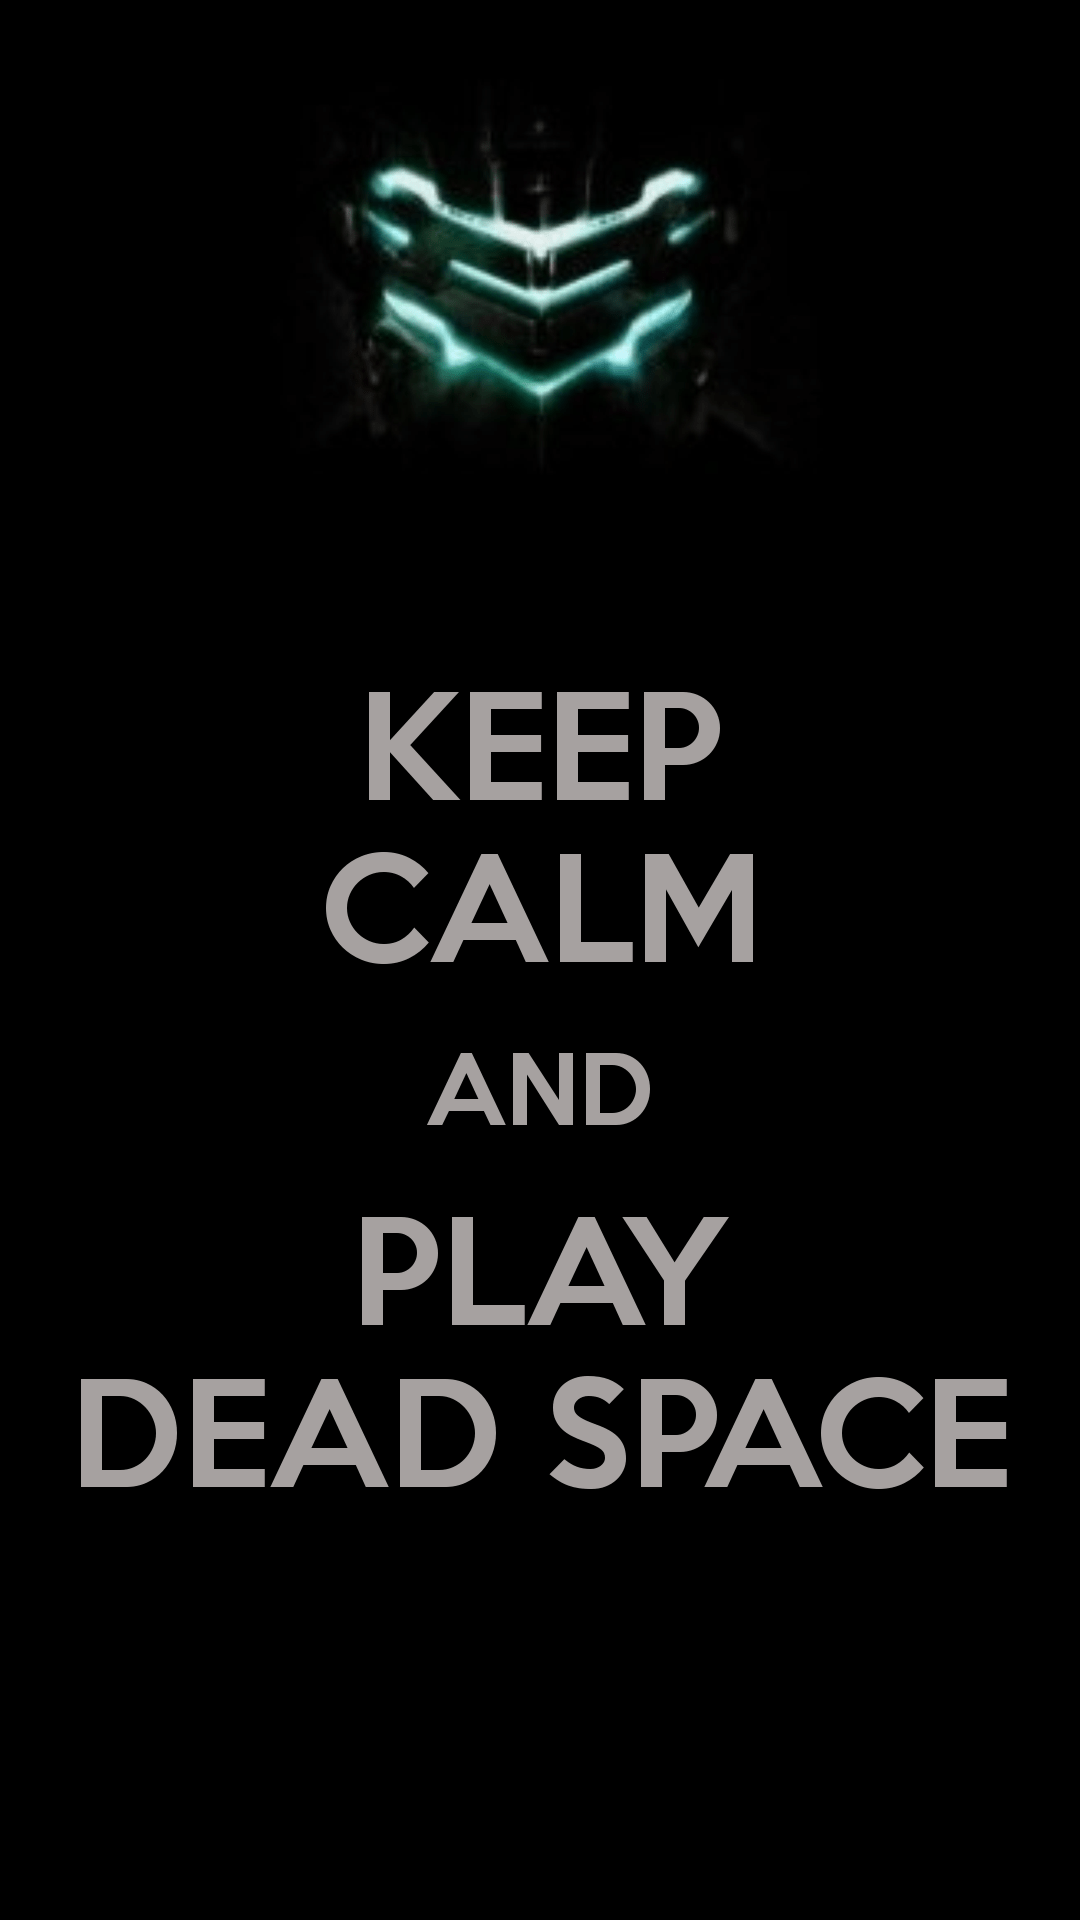 Keep Calm And Play Dead Space iPhone 6 Plus HD Wallpaper